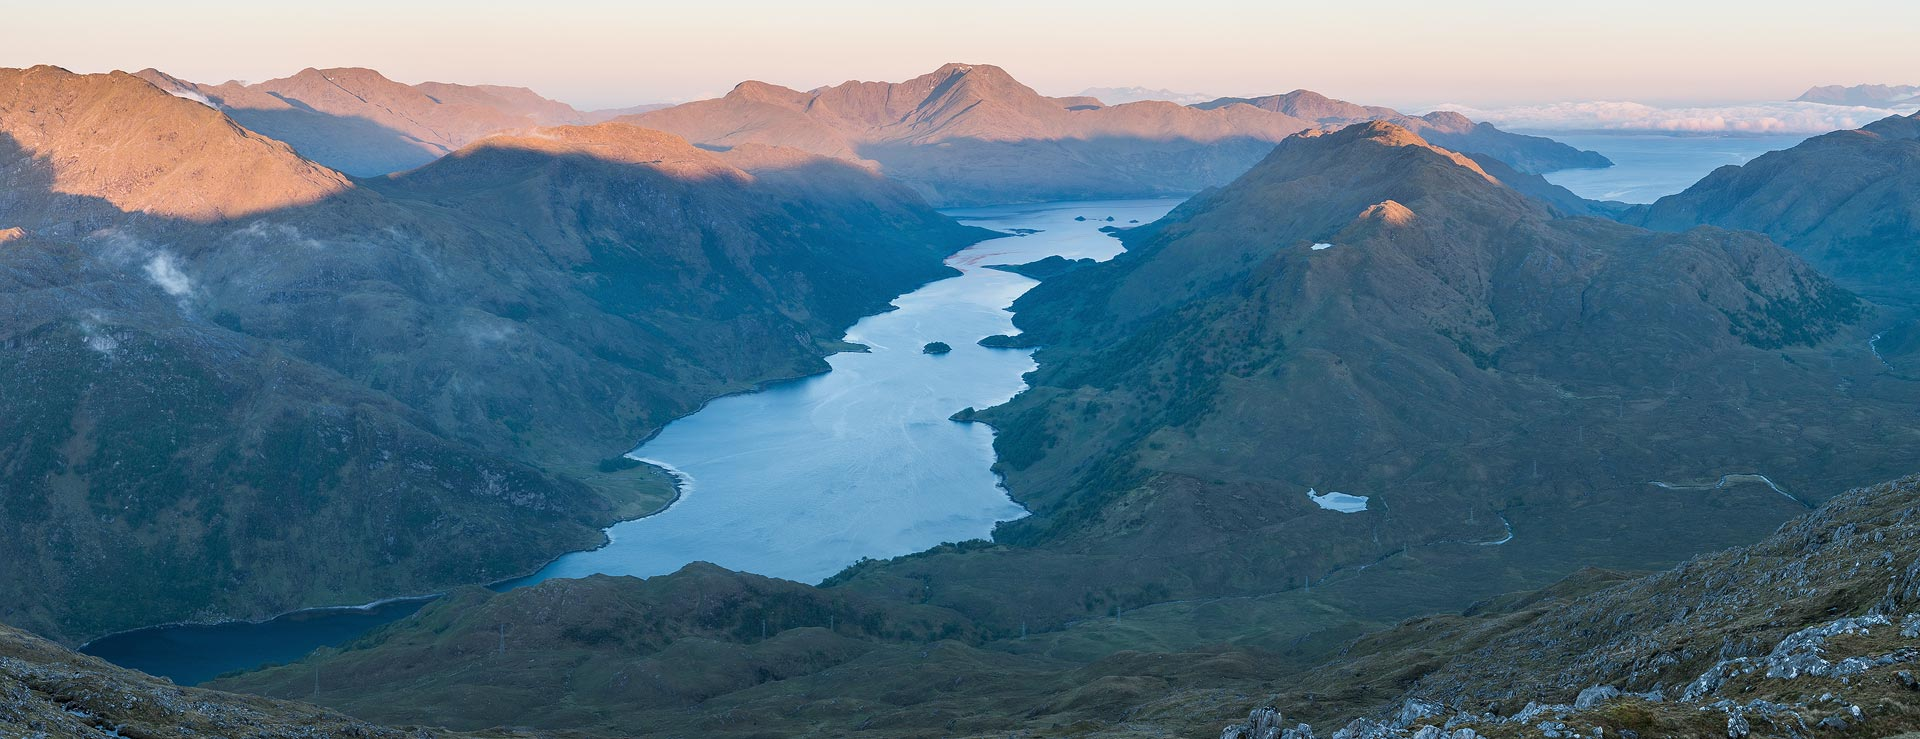 Why I Carried 29kg into the Knoydart Wilderness